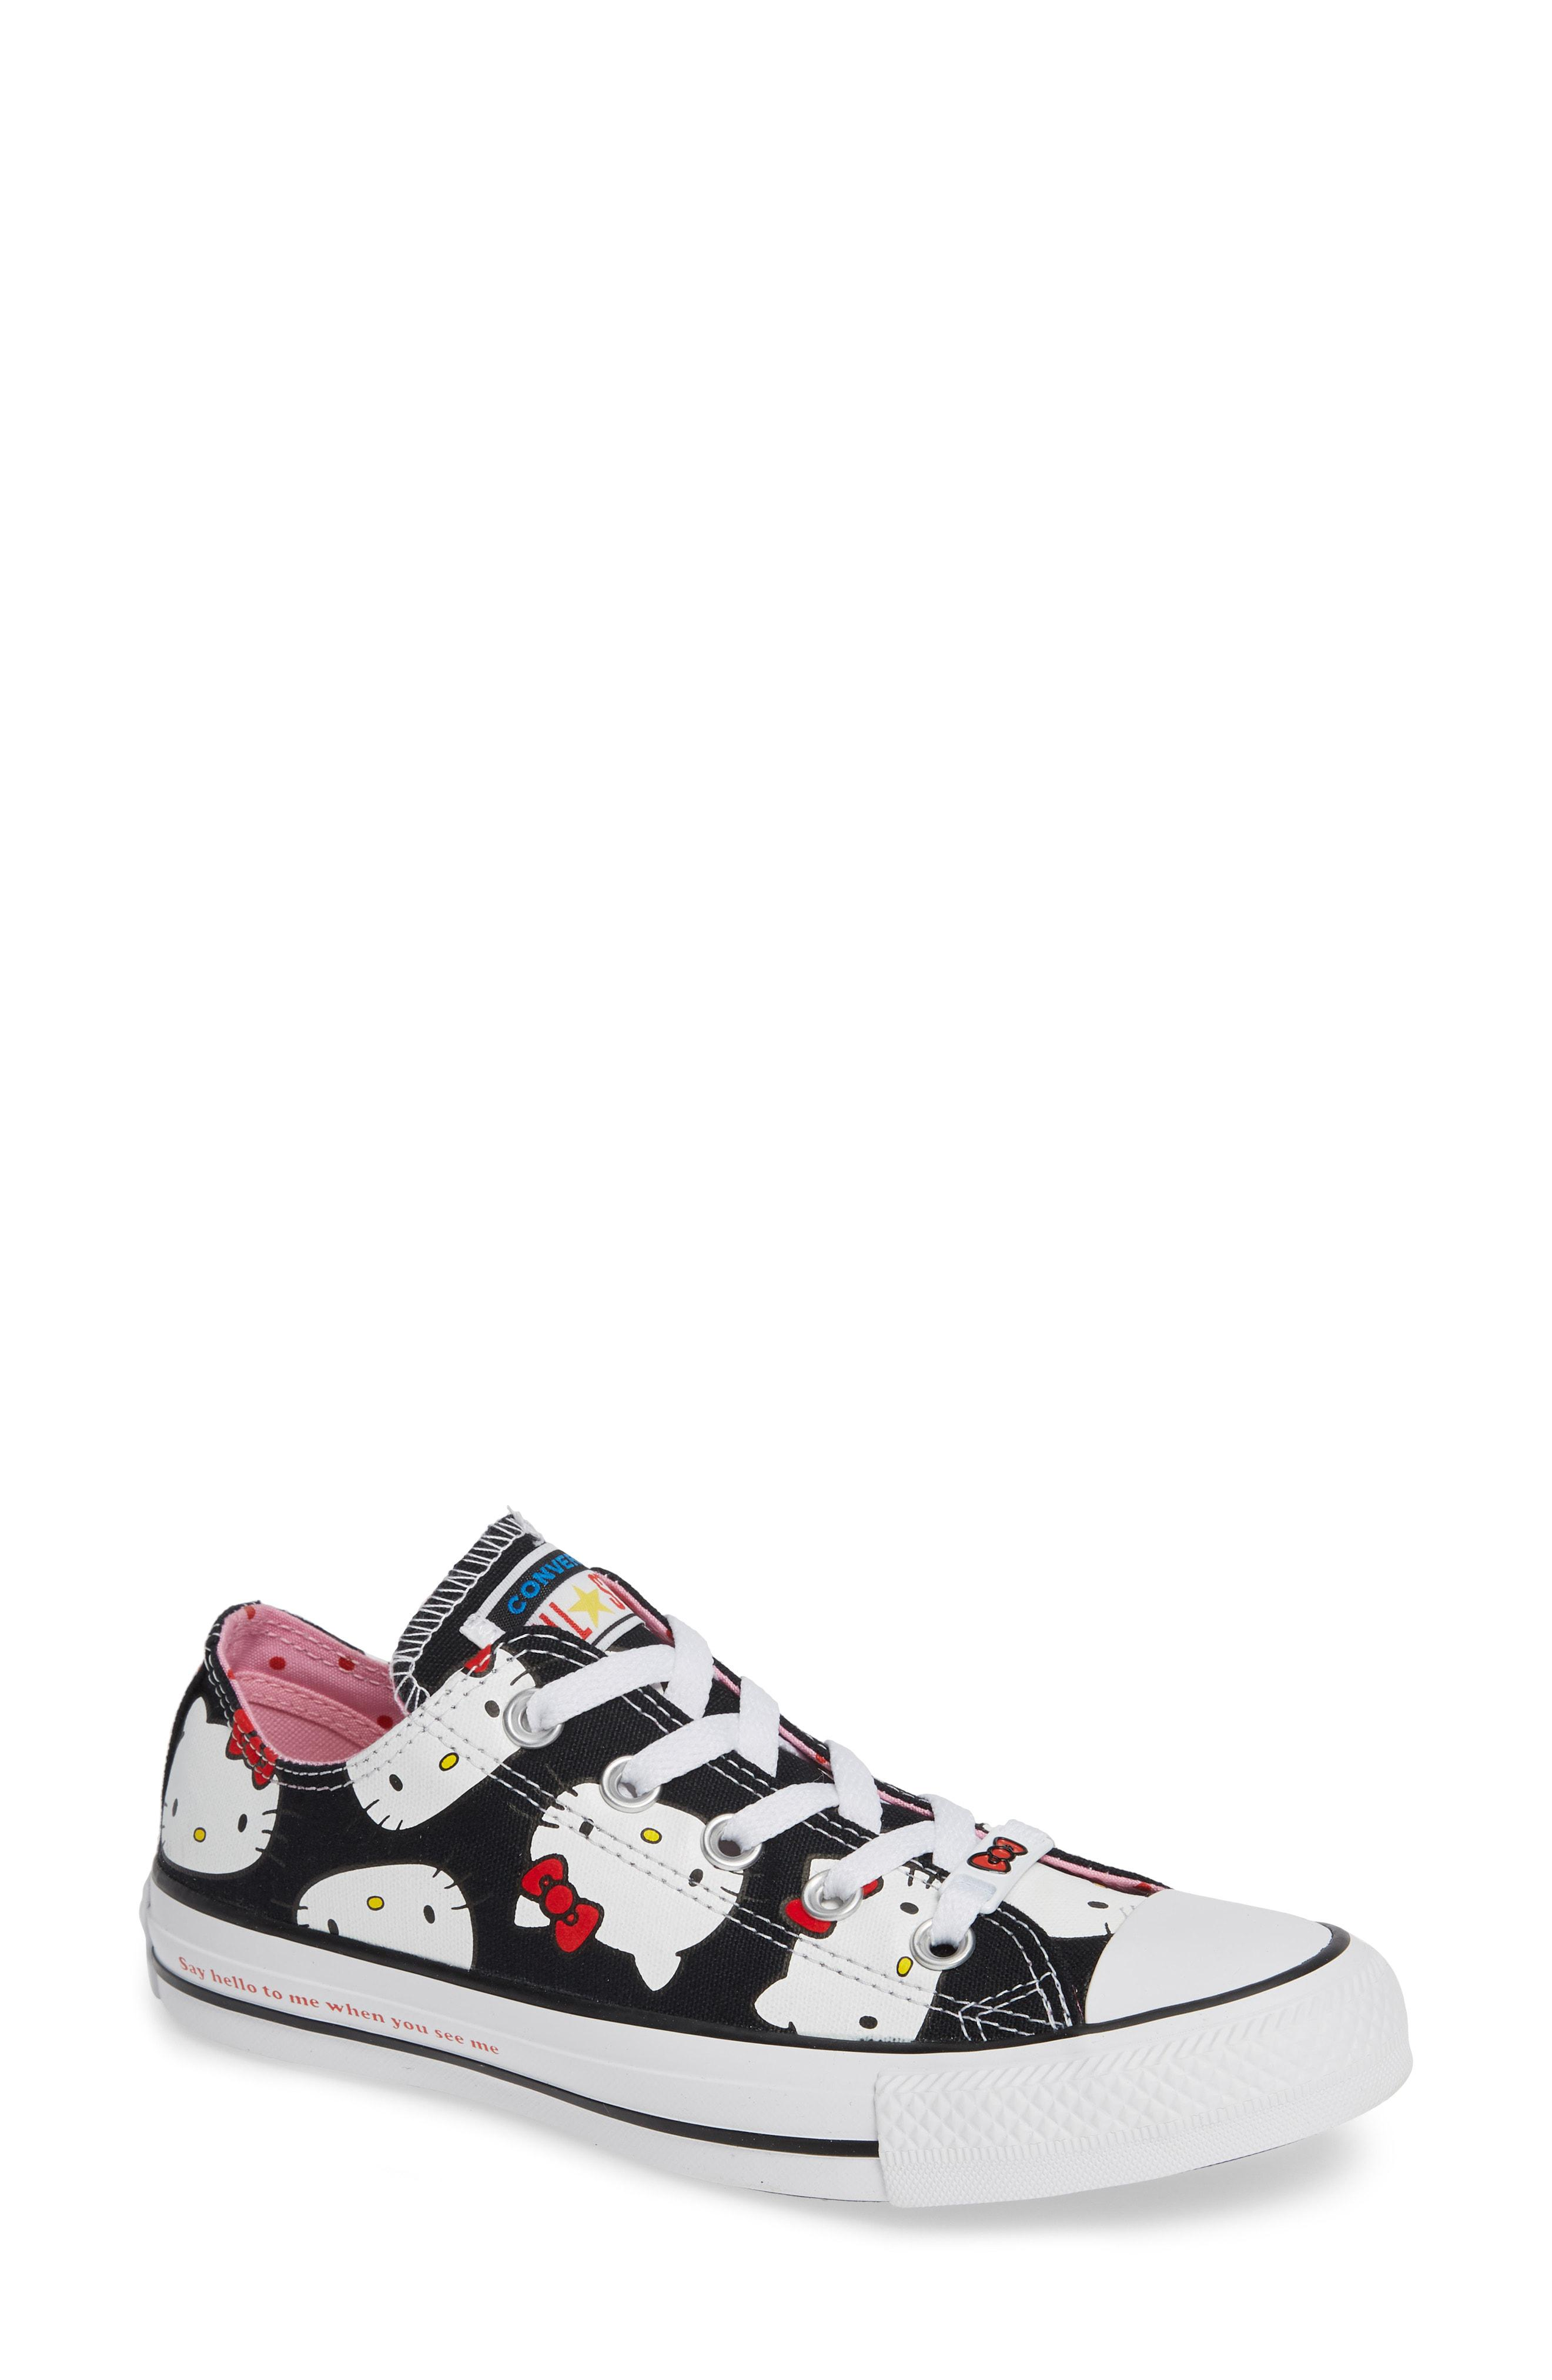 71a1acabb98f1c Lyst - Converse Chuck Taylor All Star Hello Kitty Sneaker - Save ...